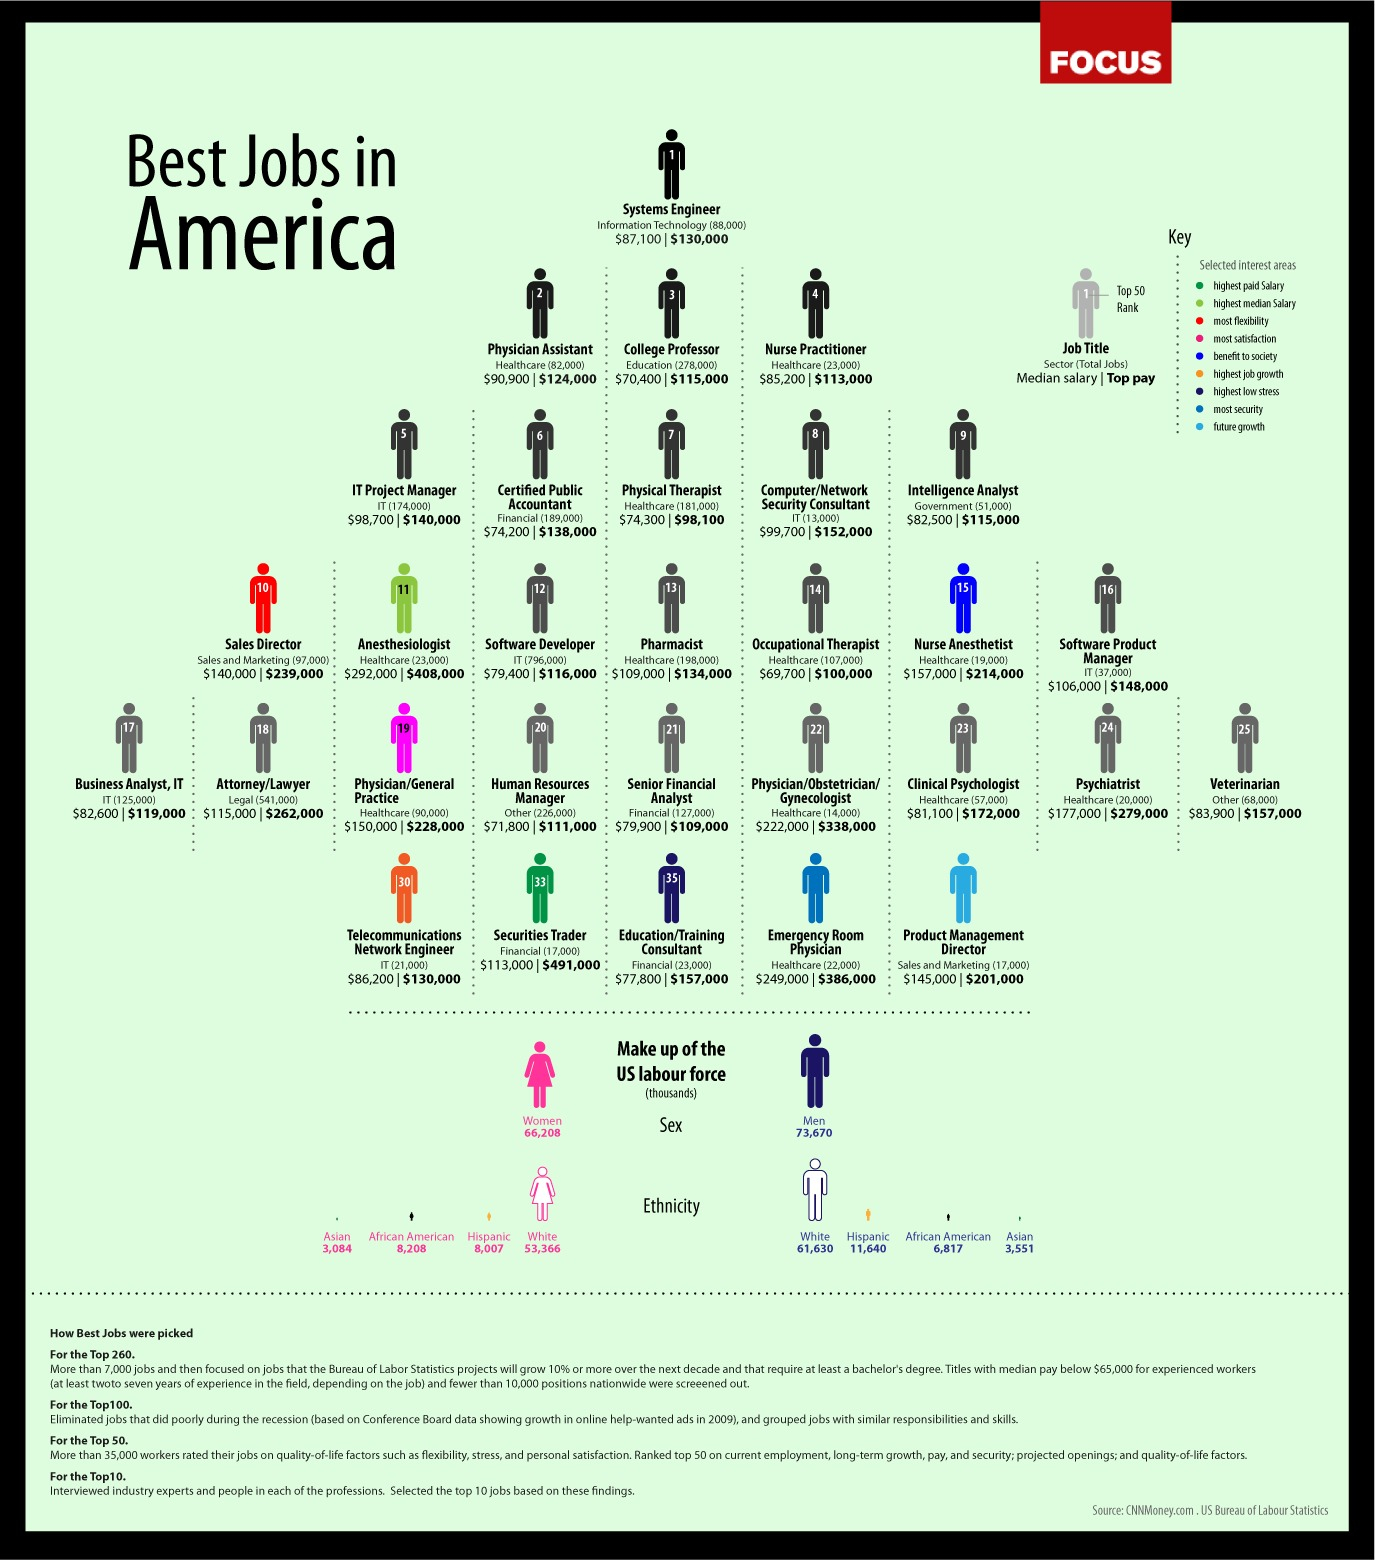 The Best Jobs in America